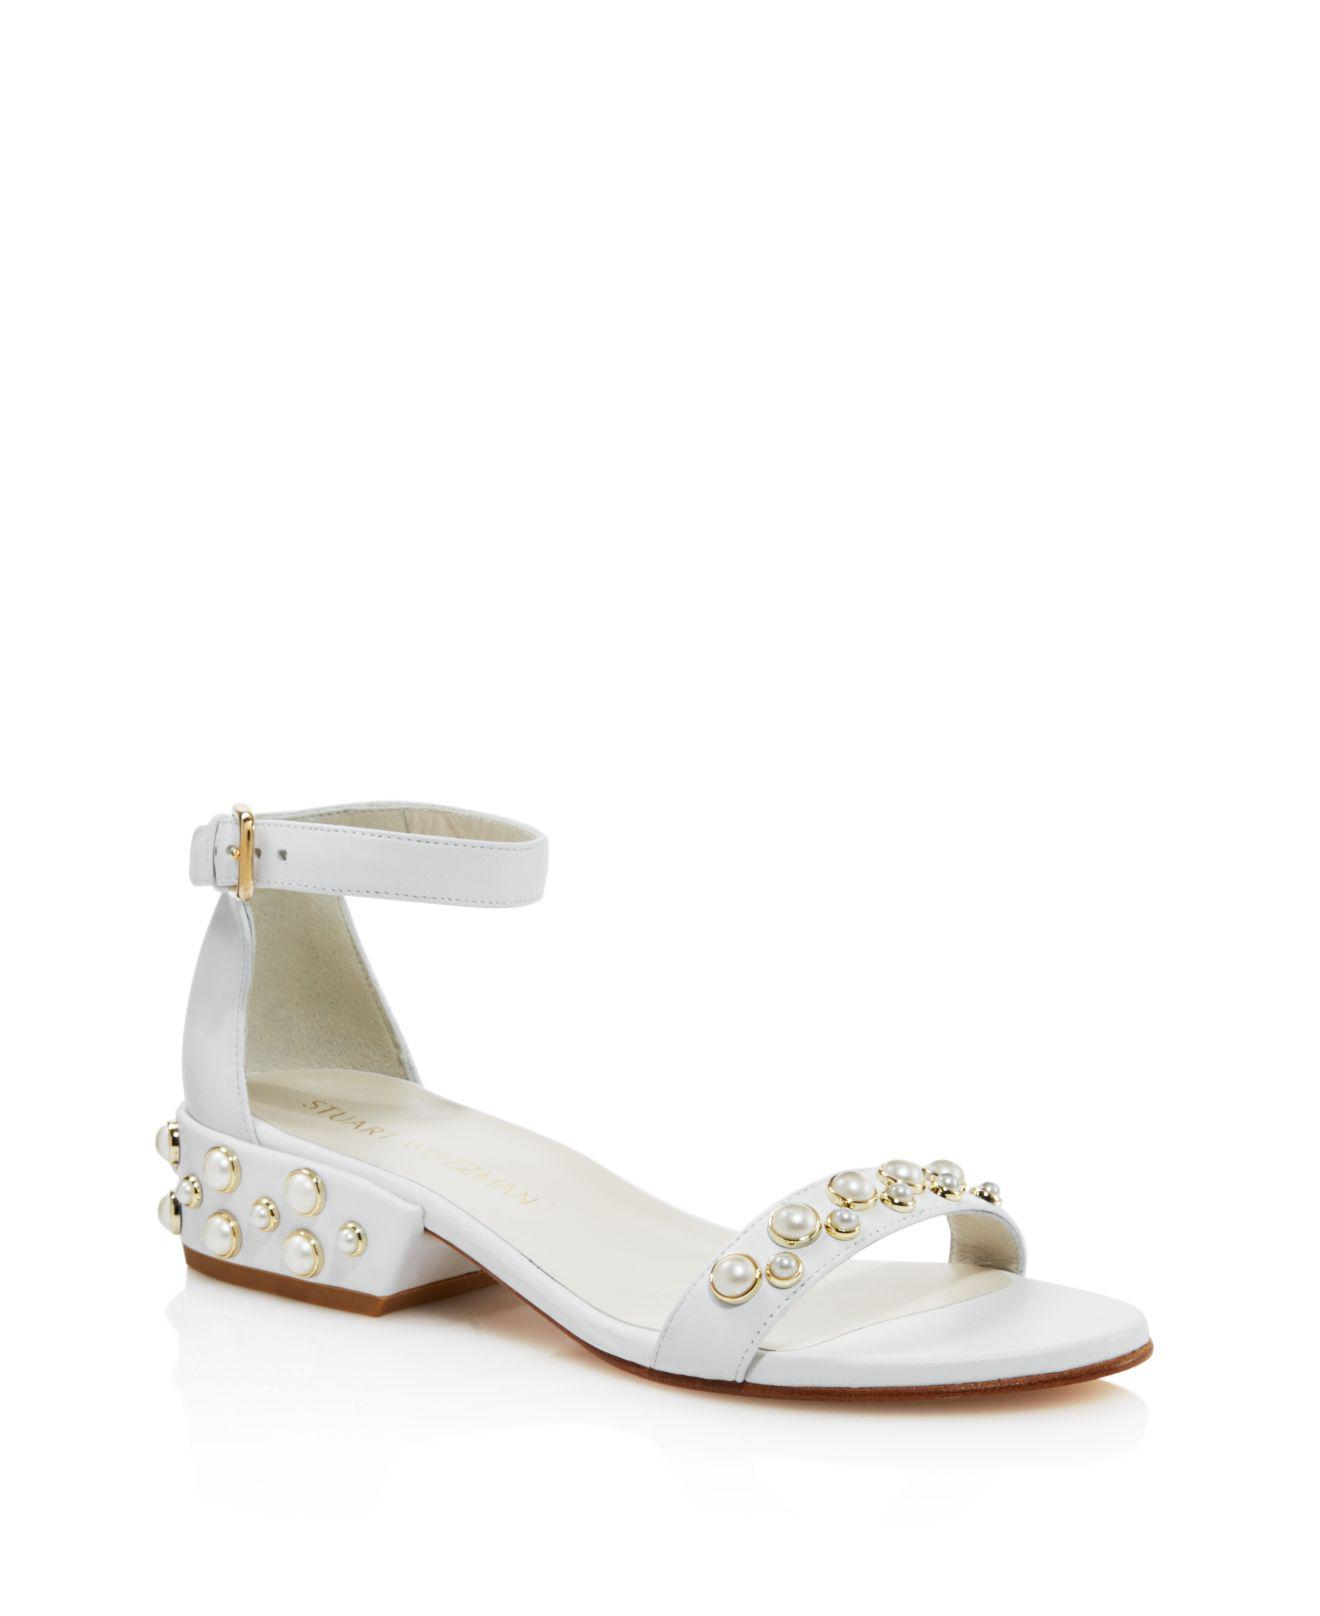 577488514f42 Lyst - Stuart Weitzman Allpearls Leather Pearl Stud Ankle Strap ...